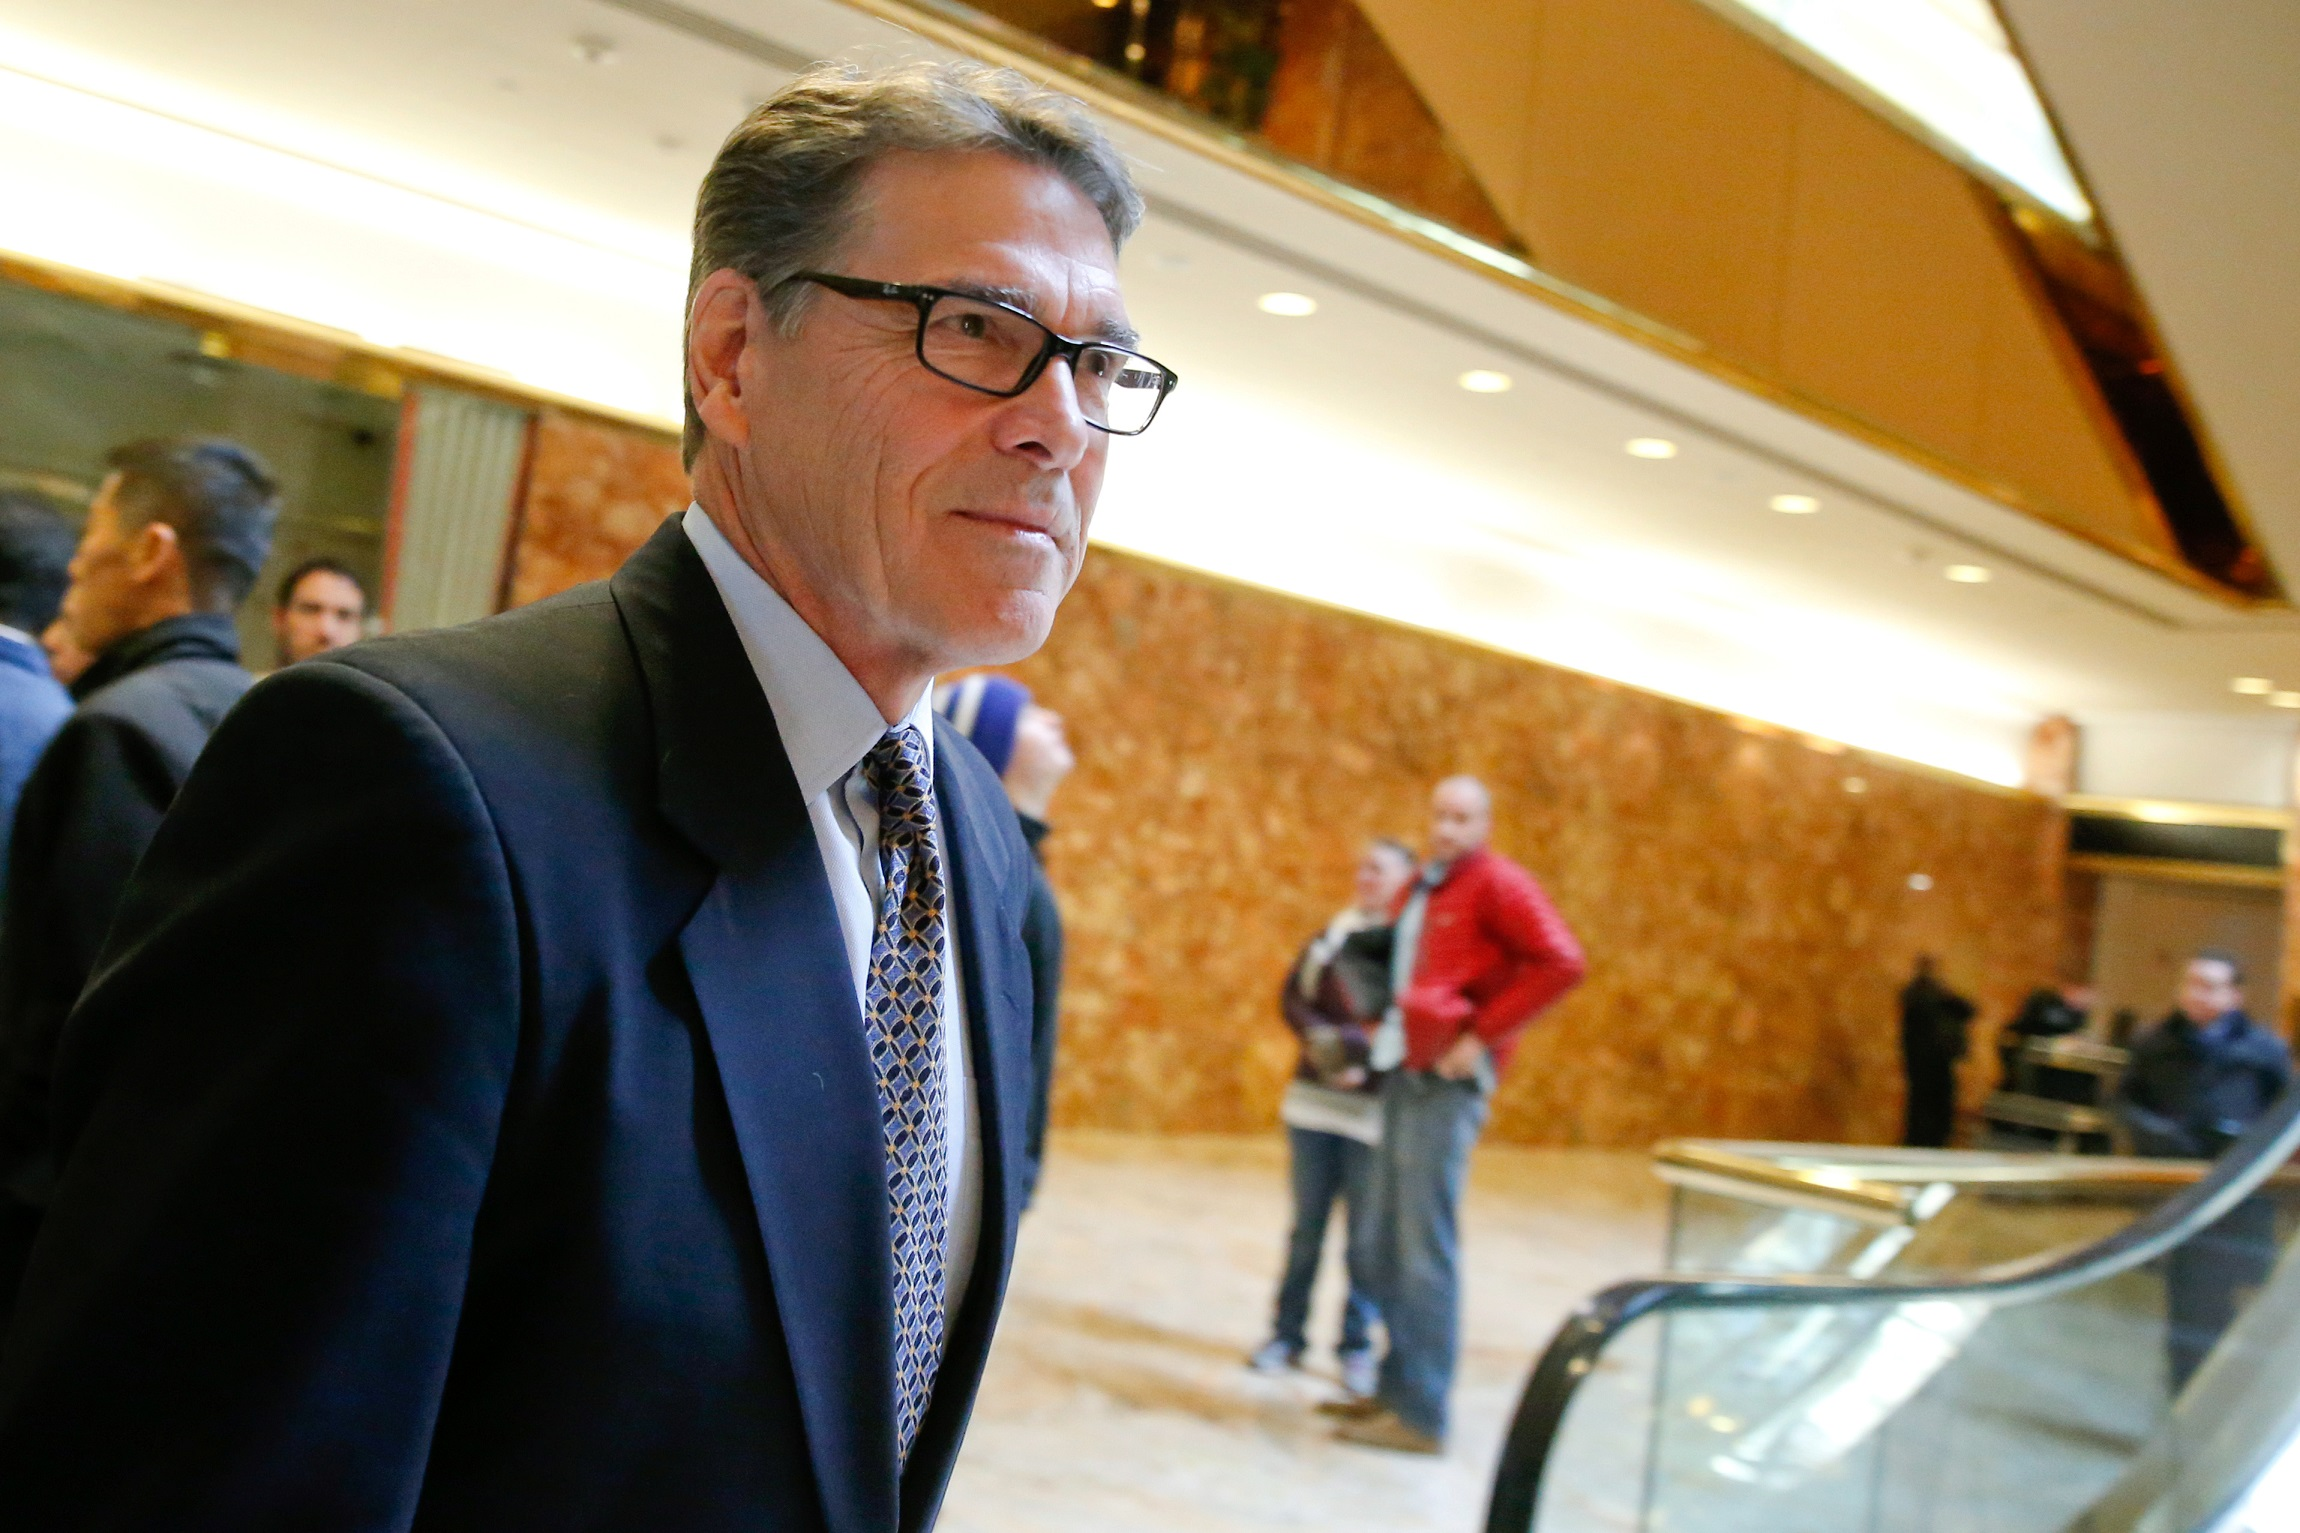 Former Texas Governor Rick Perry exits after meeting with U.S. President-elect Donald Trump at Trump Tower in Manhattan, New York City, U.S., November 21, 2016.  REUTERS/Brendan McDermid - RTSSOOL